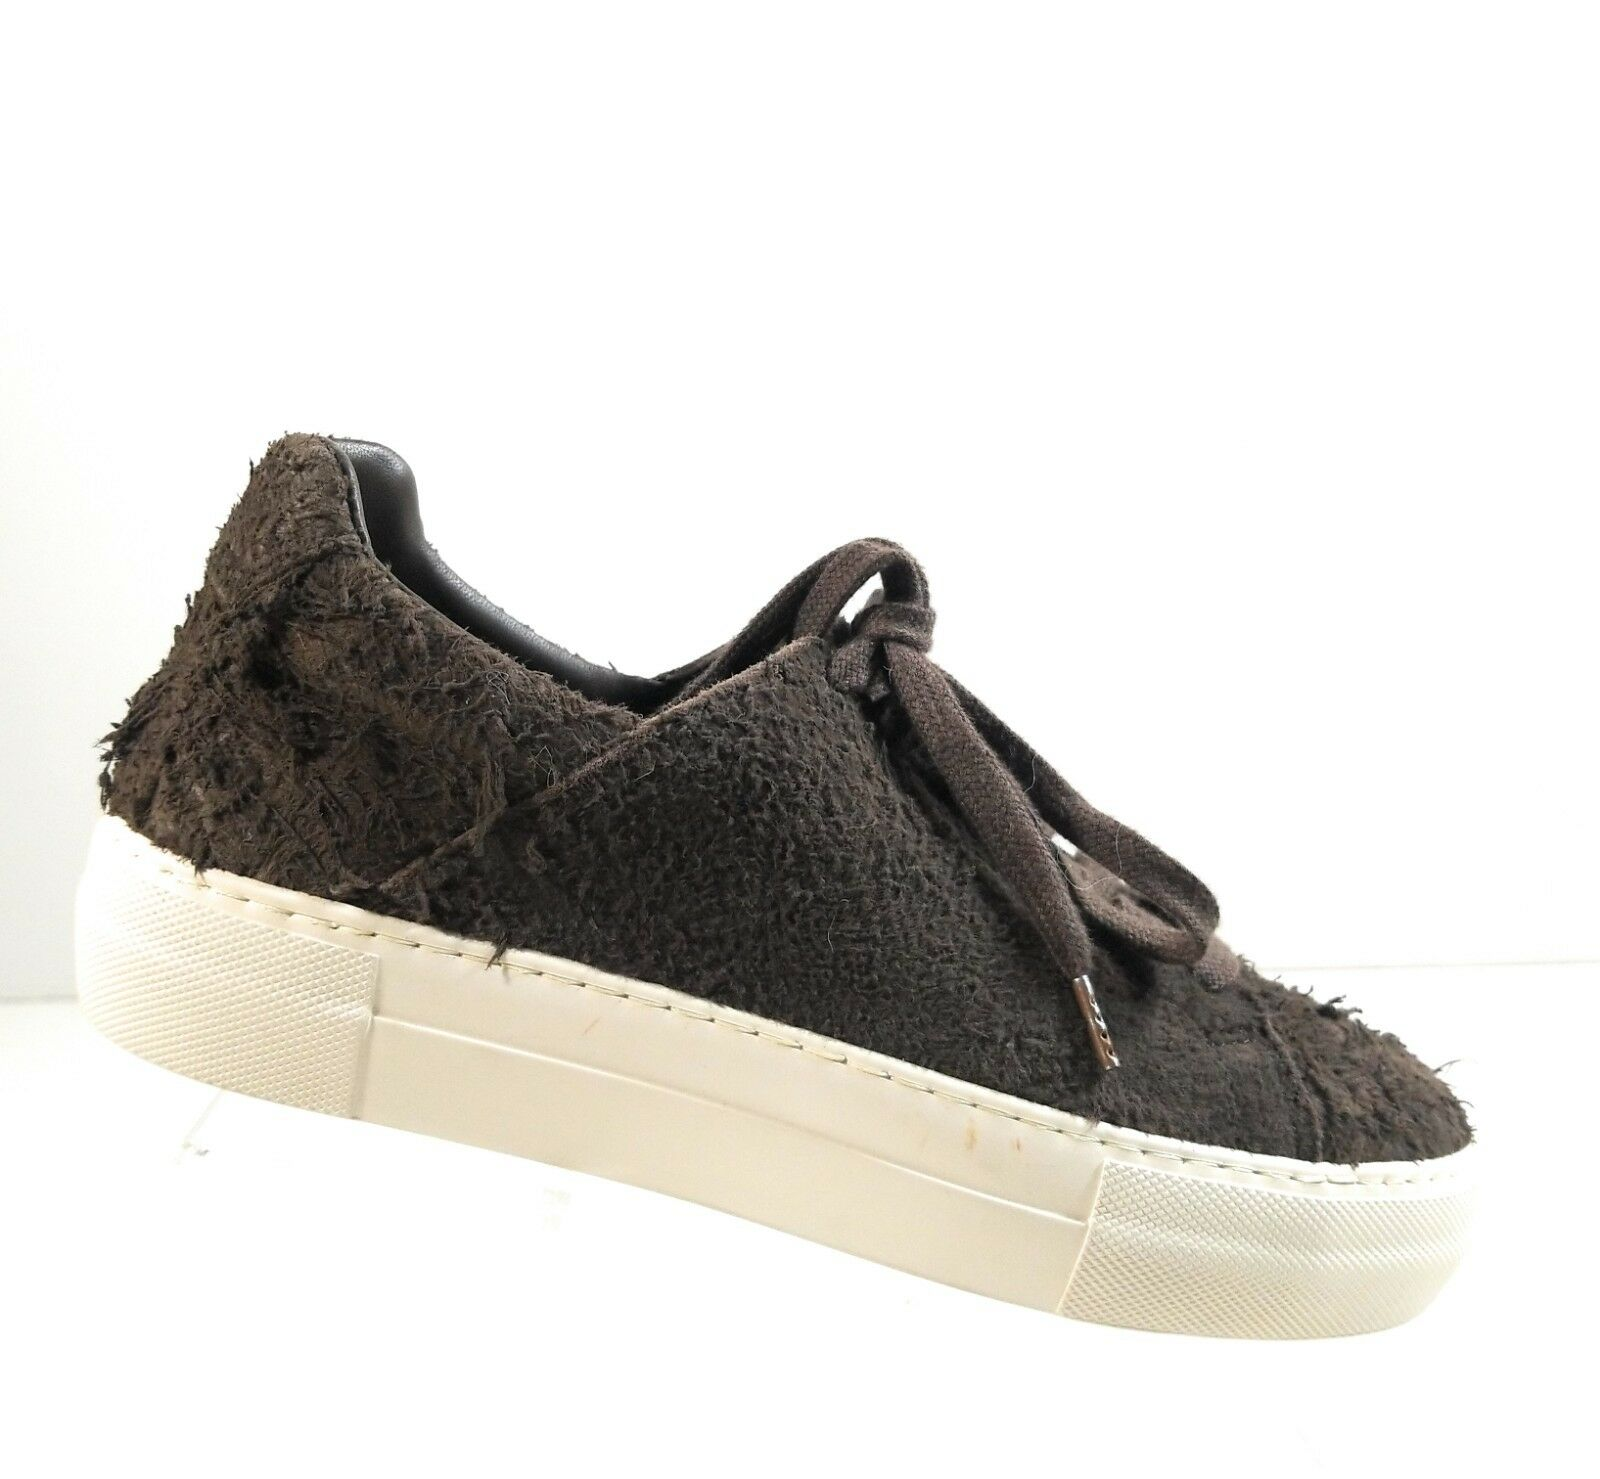 Helmut Lang  Women Fashion Lace Up Low Top Shearling Sneakers Size 38.5